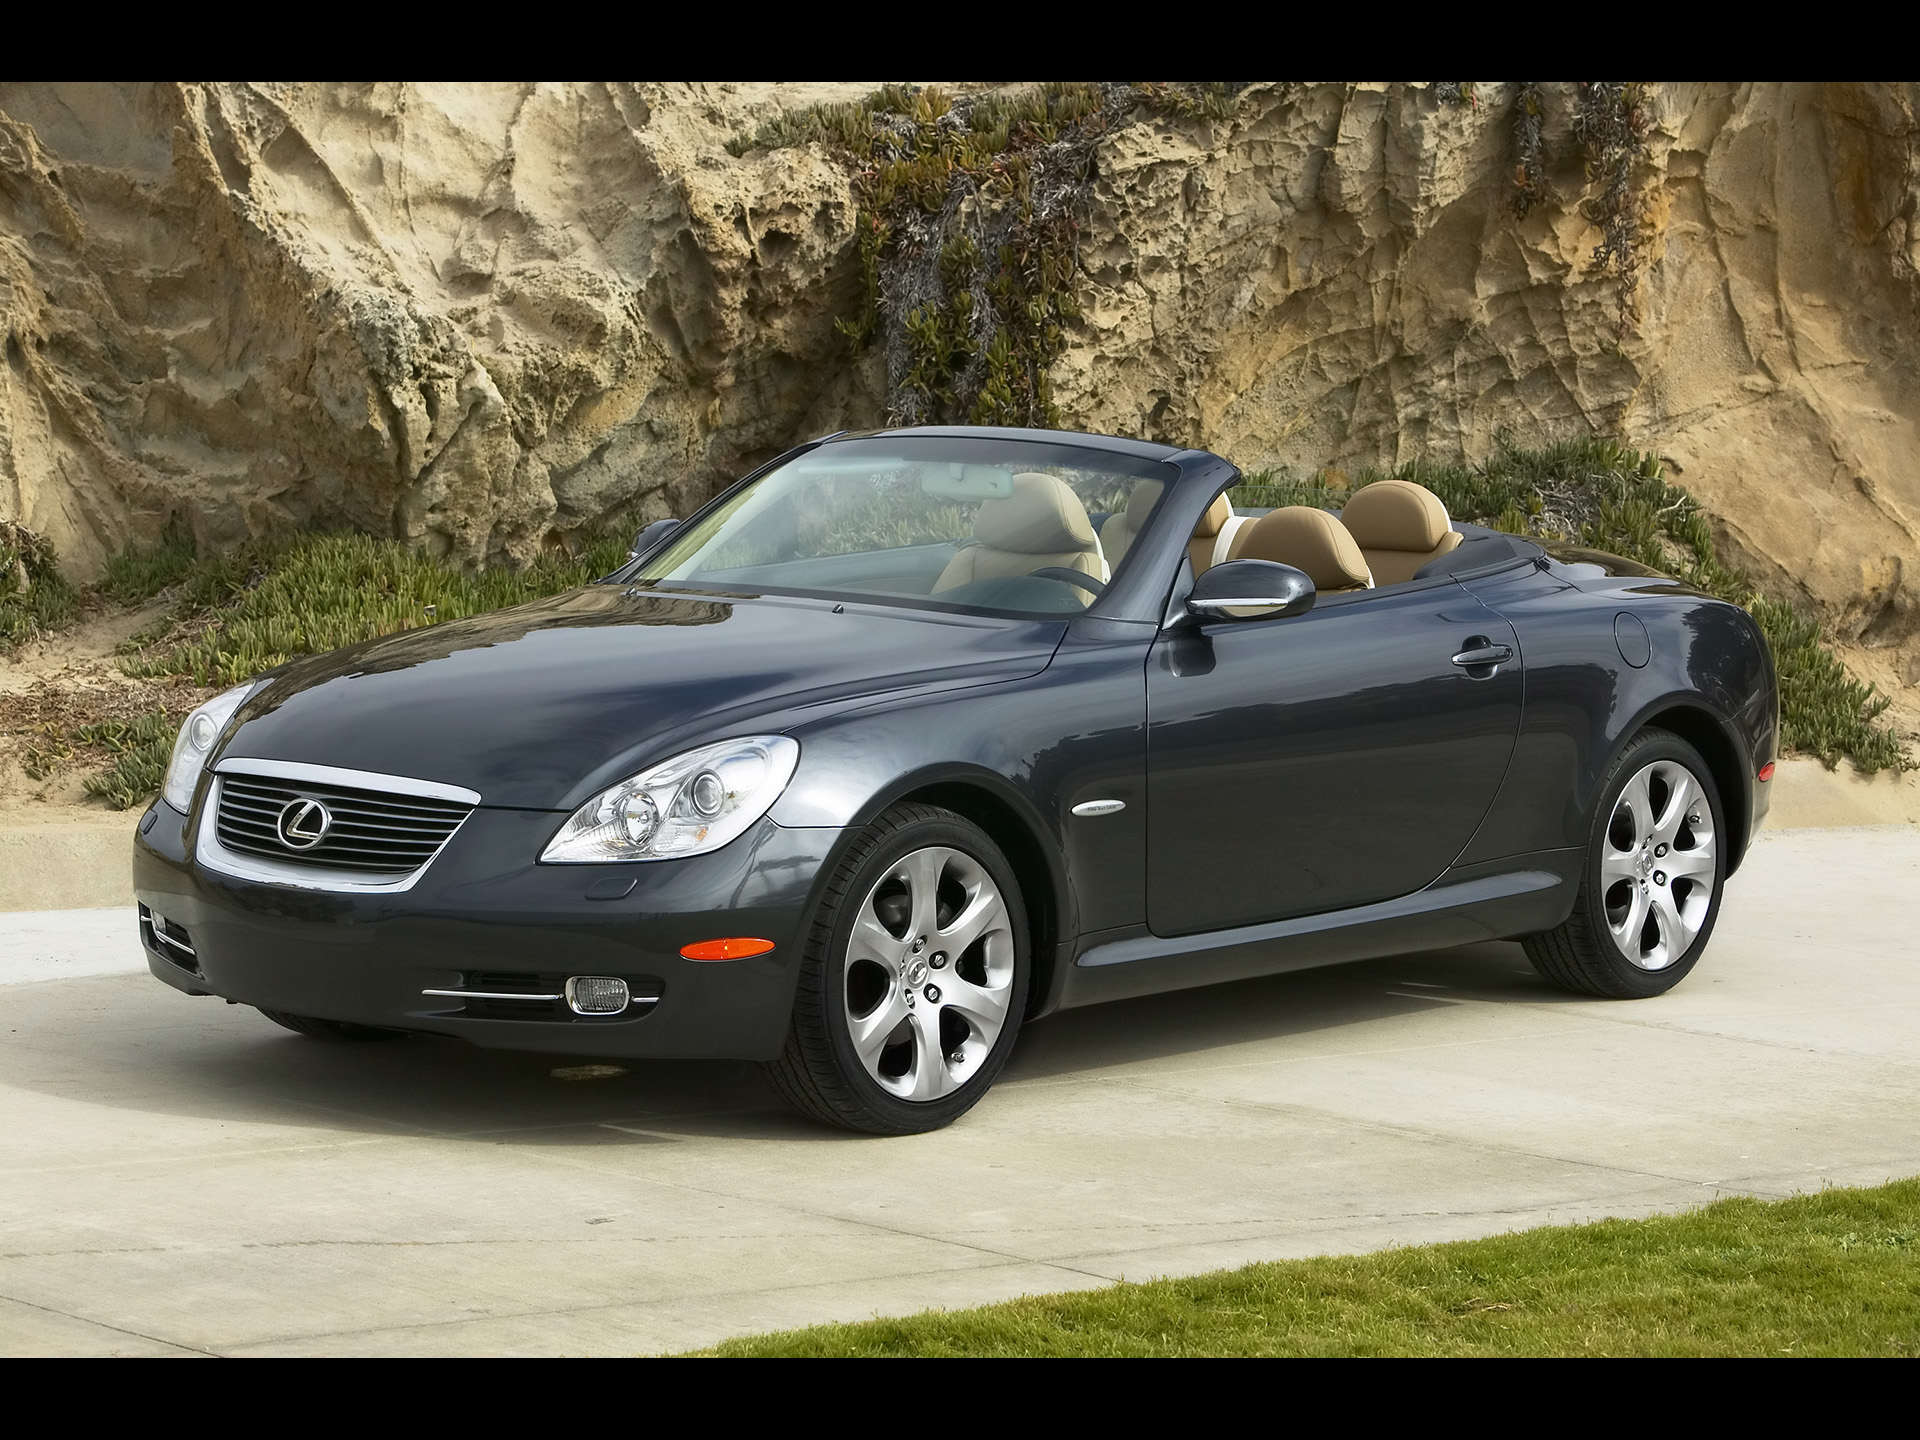 lexus sc 430 photos photogallery with 51 pics. Black Bedroom Furniture Sets. Home Design Ideas